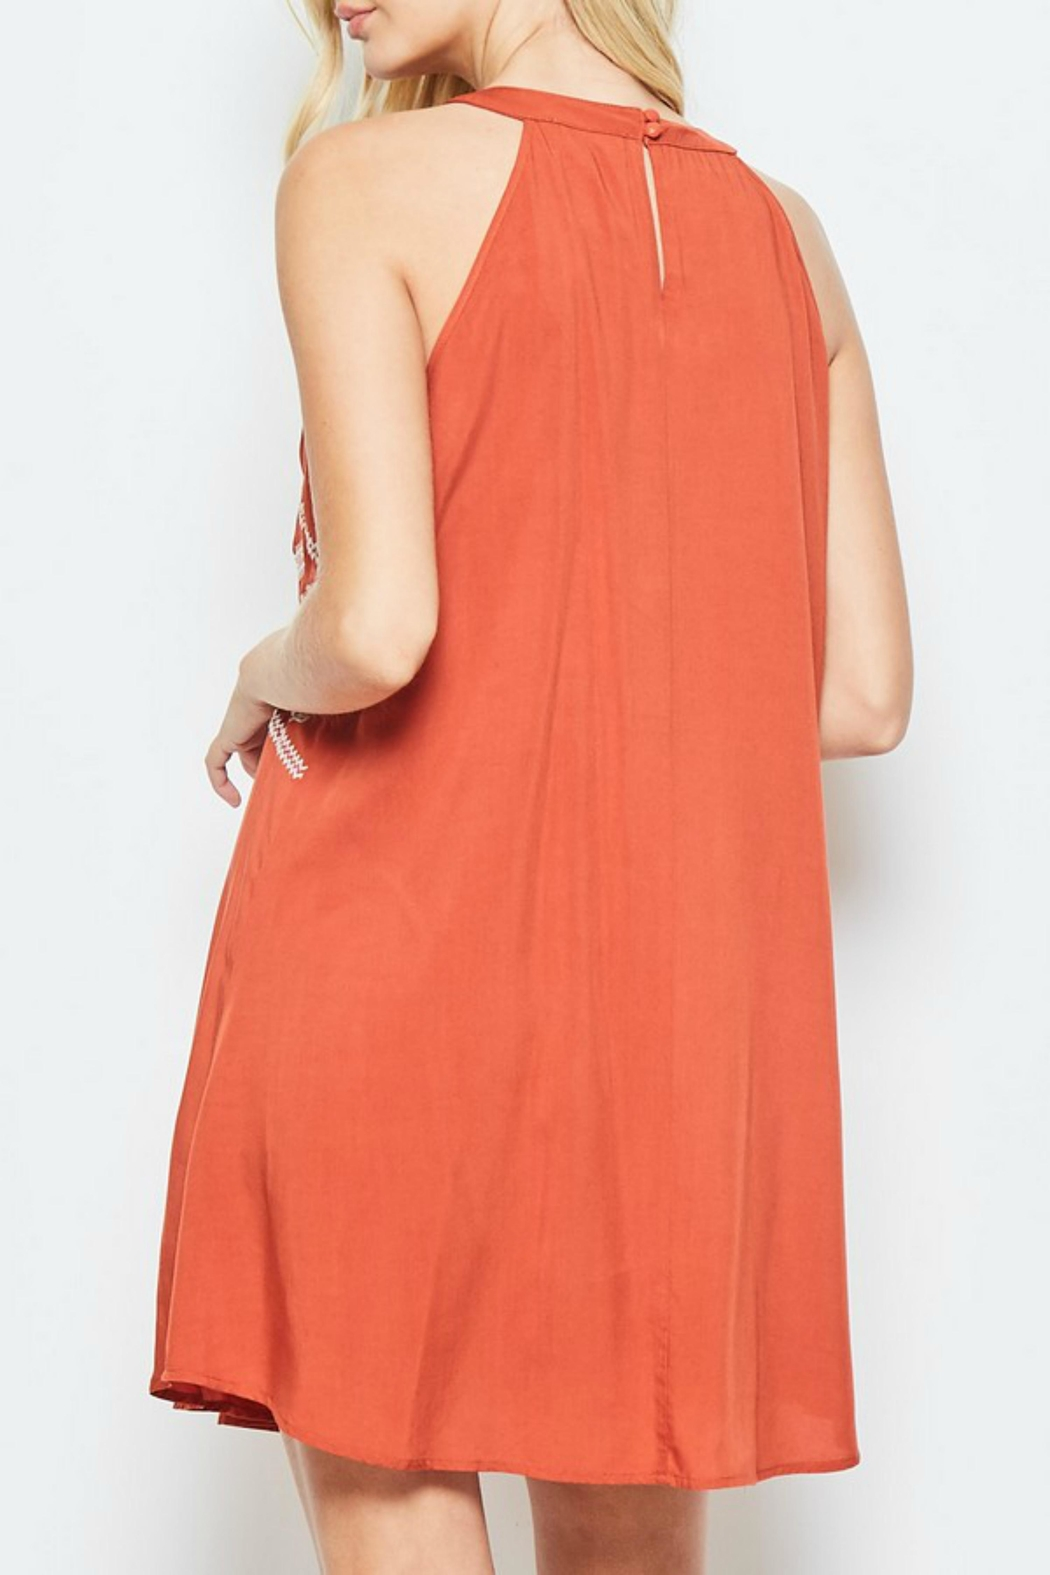 Andree by Unit Embroidered Halter Top/dress - Front Full Image